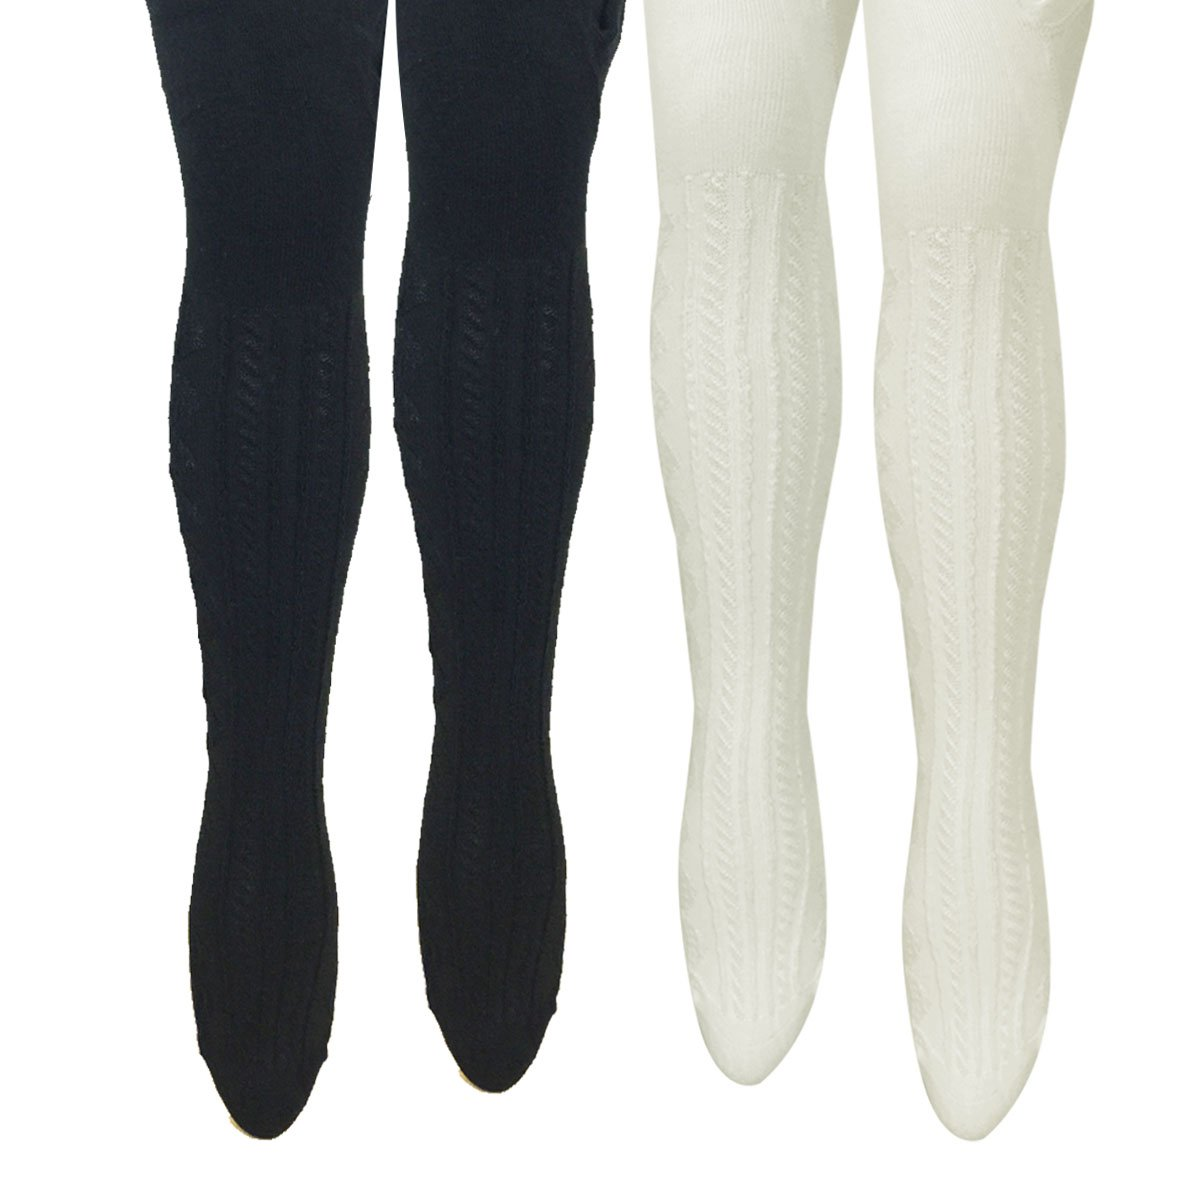 Bowbear Toddler Girl 2-Pair Cable-Knit Tights